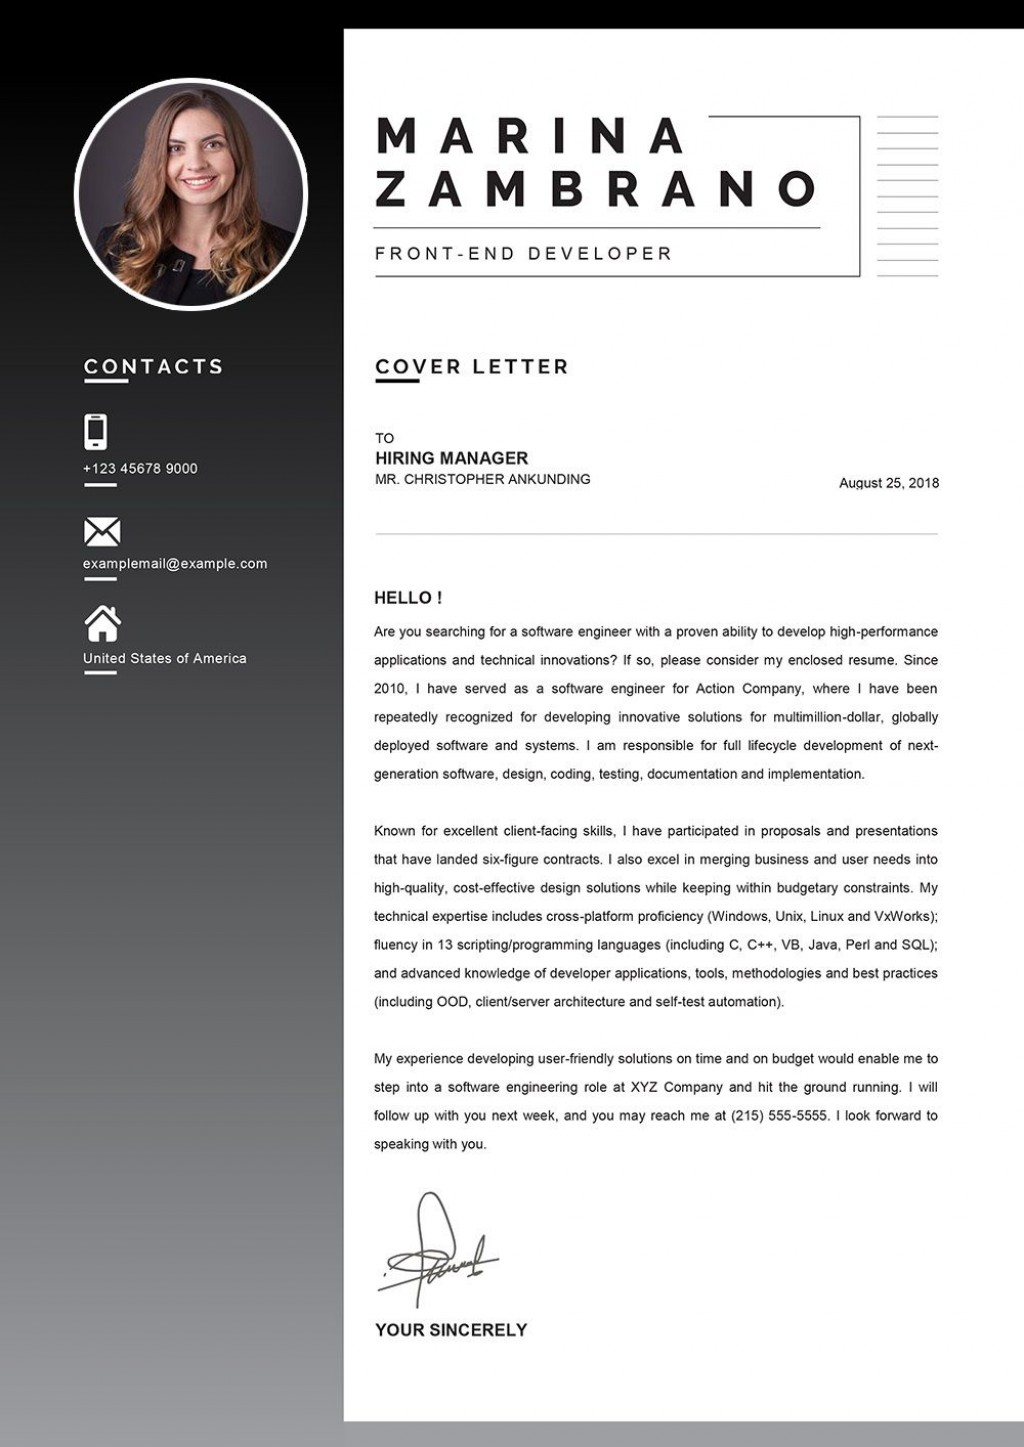 002 Wondrou Download Cv And Cover Letter Template High Definition  TemplatesLarge